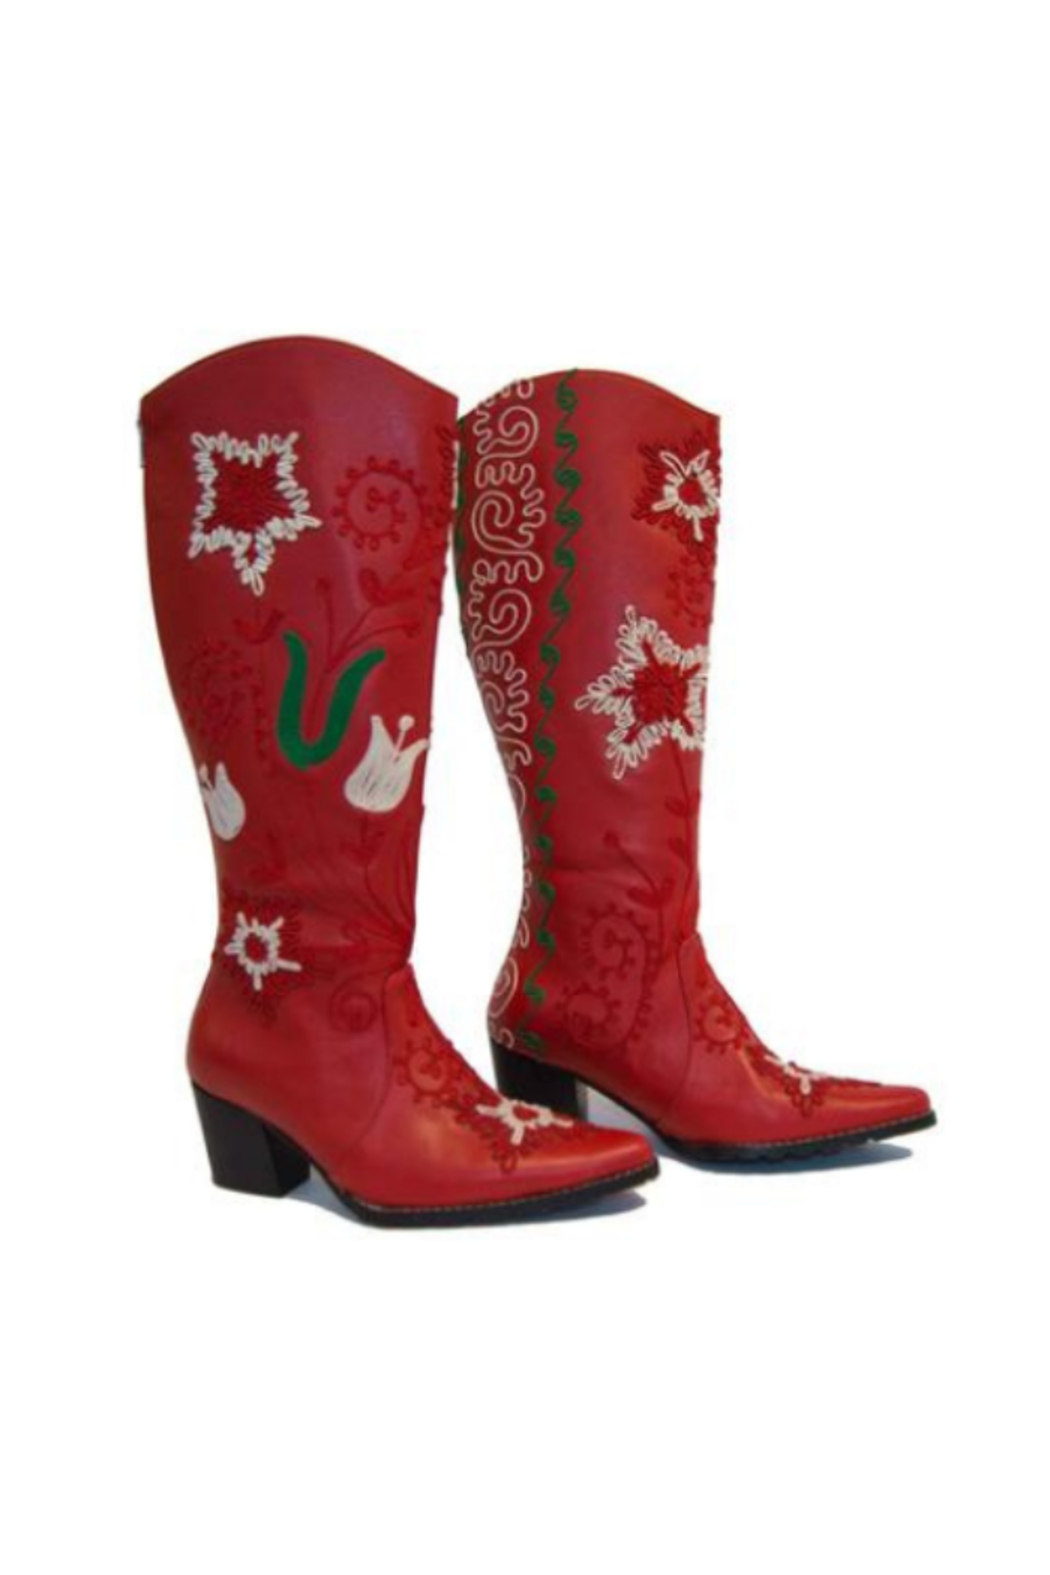 Artemis Collections Inc Cheyenne Tall Embroidered Leather 1 - Main Image